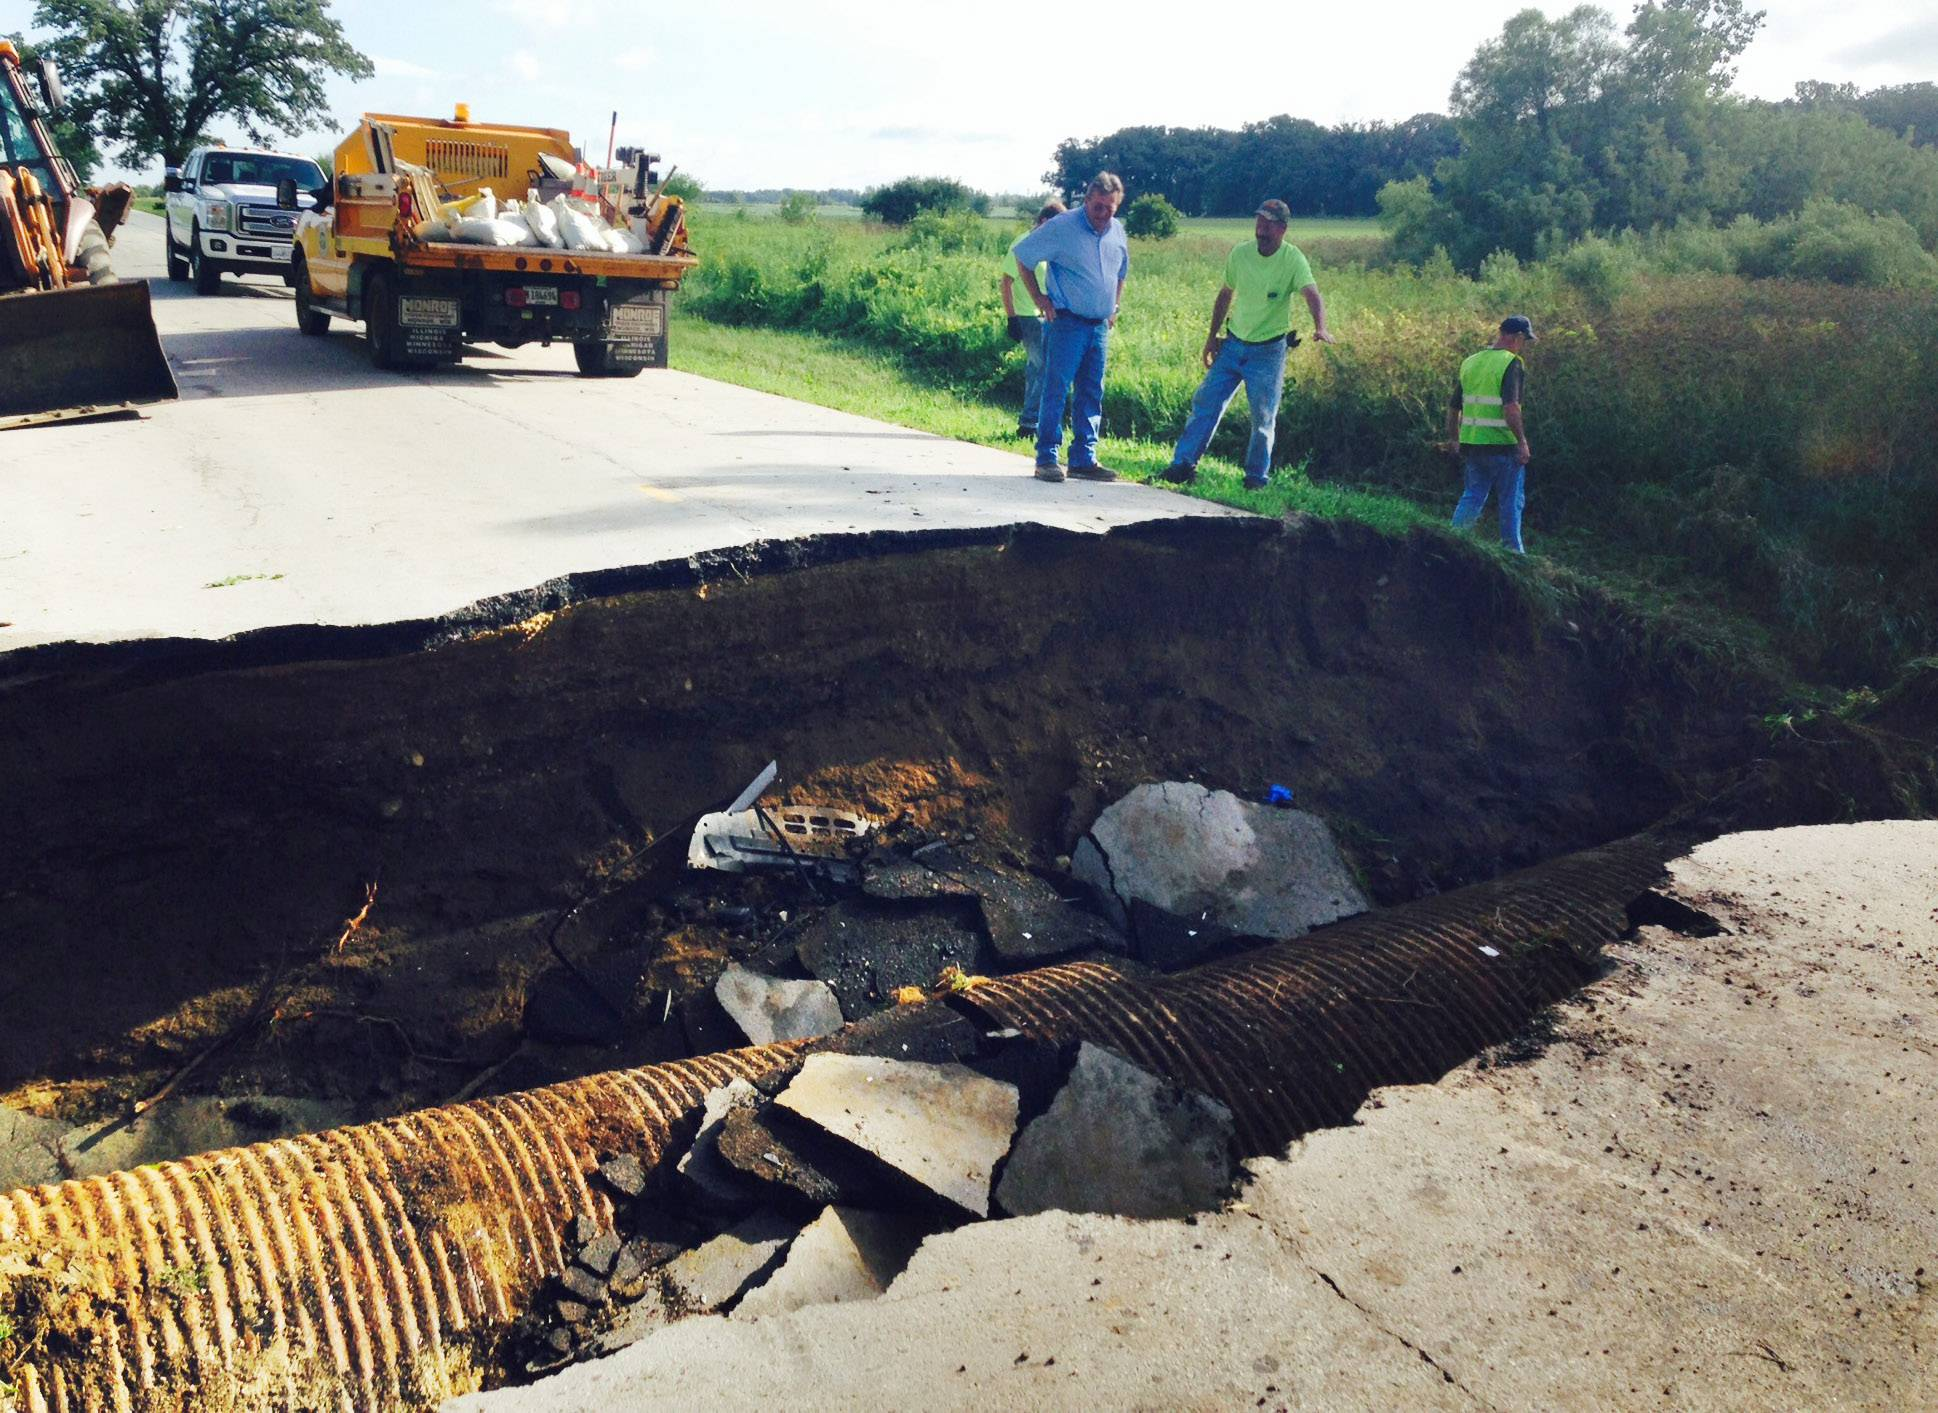 An Elgin mother and her teenage son narrowly avoided tragedy early Tuesday morning when their car plunged into a sinkhole along a washed-out rural Kane County road and then was run over by a pickup truck.